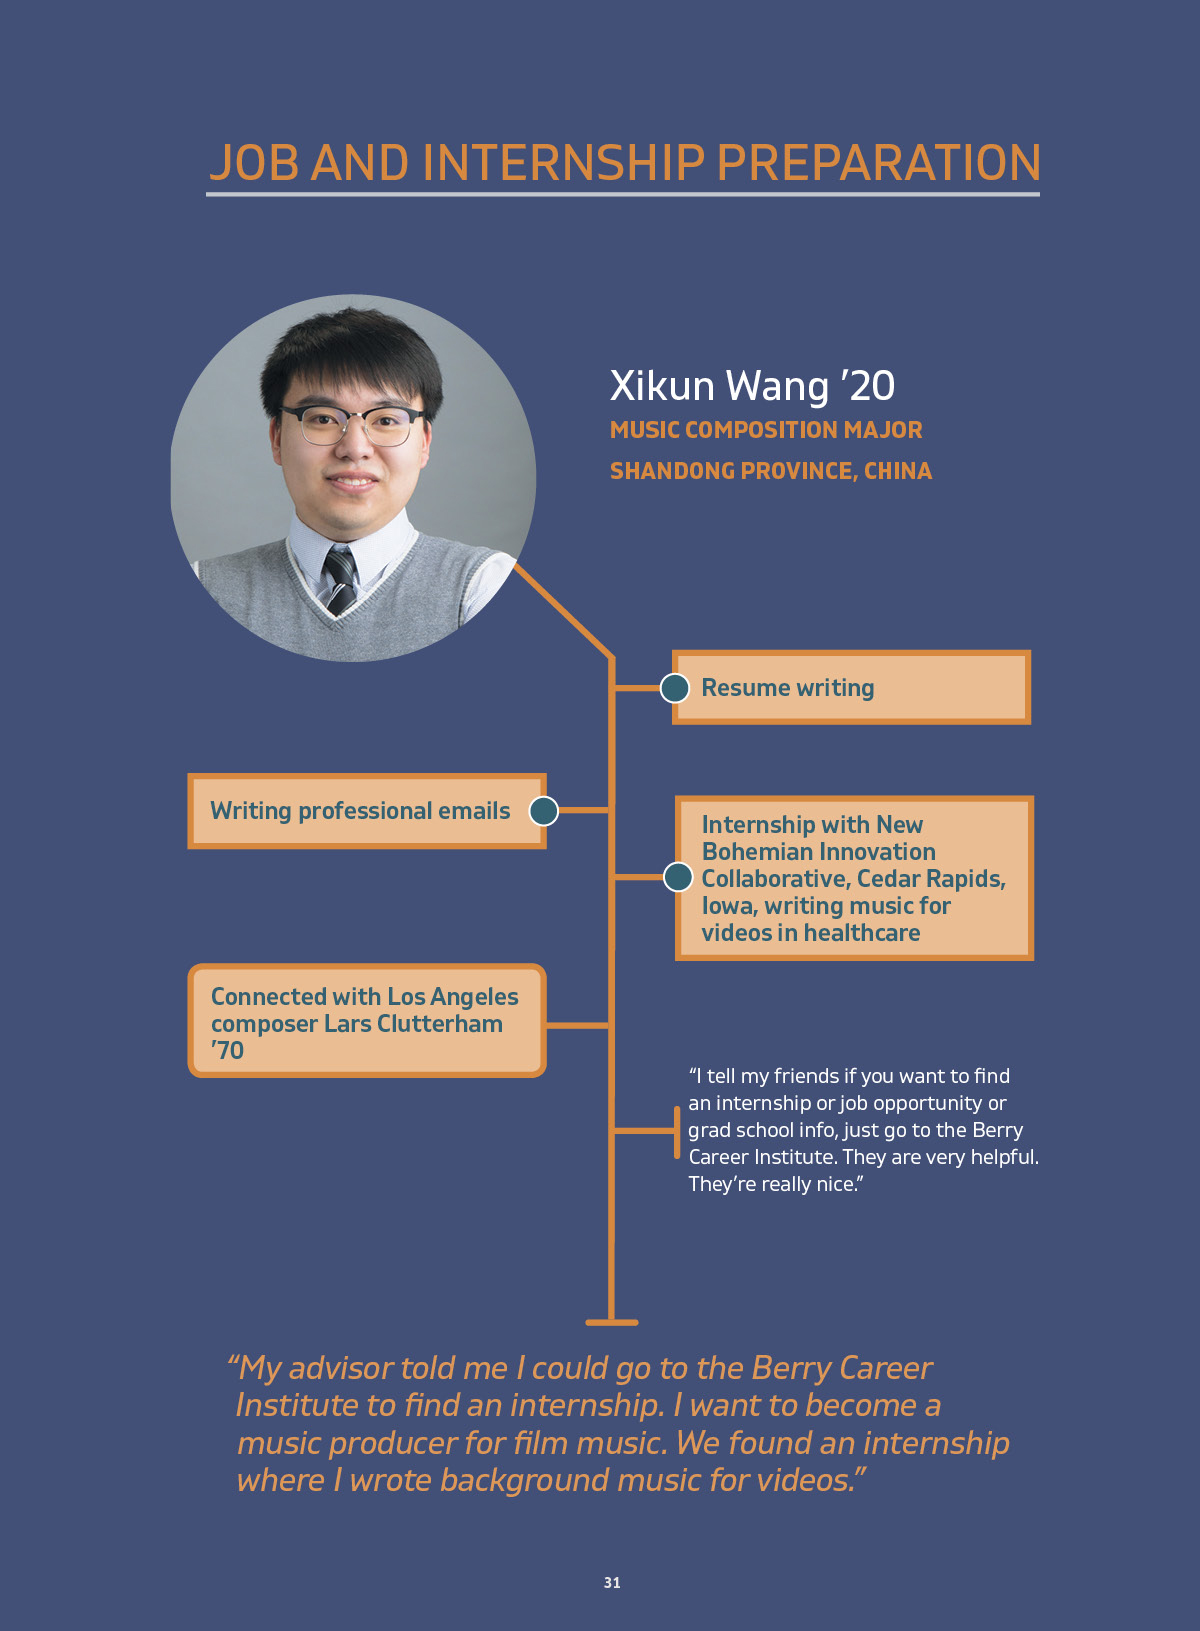 Xikun Wang '20 graphic